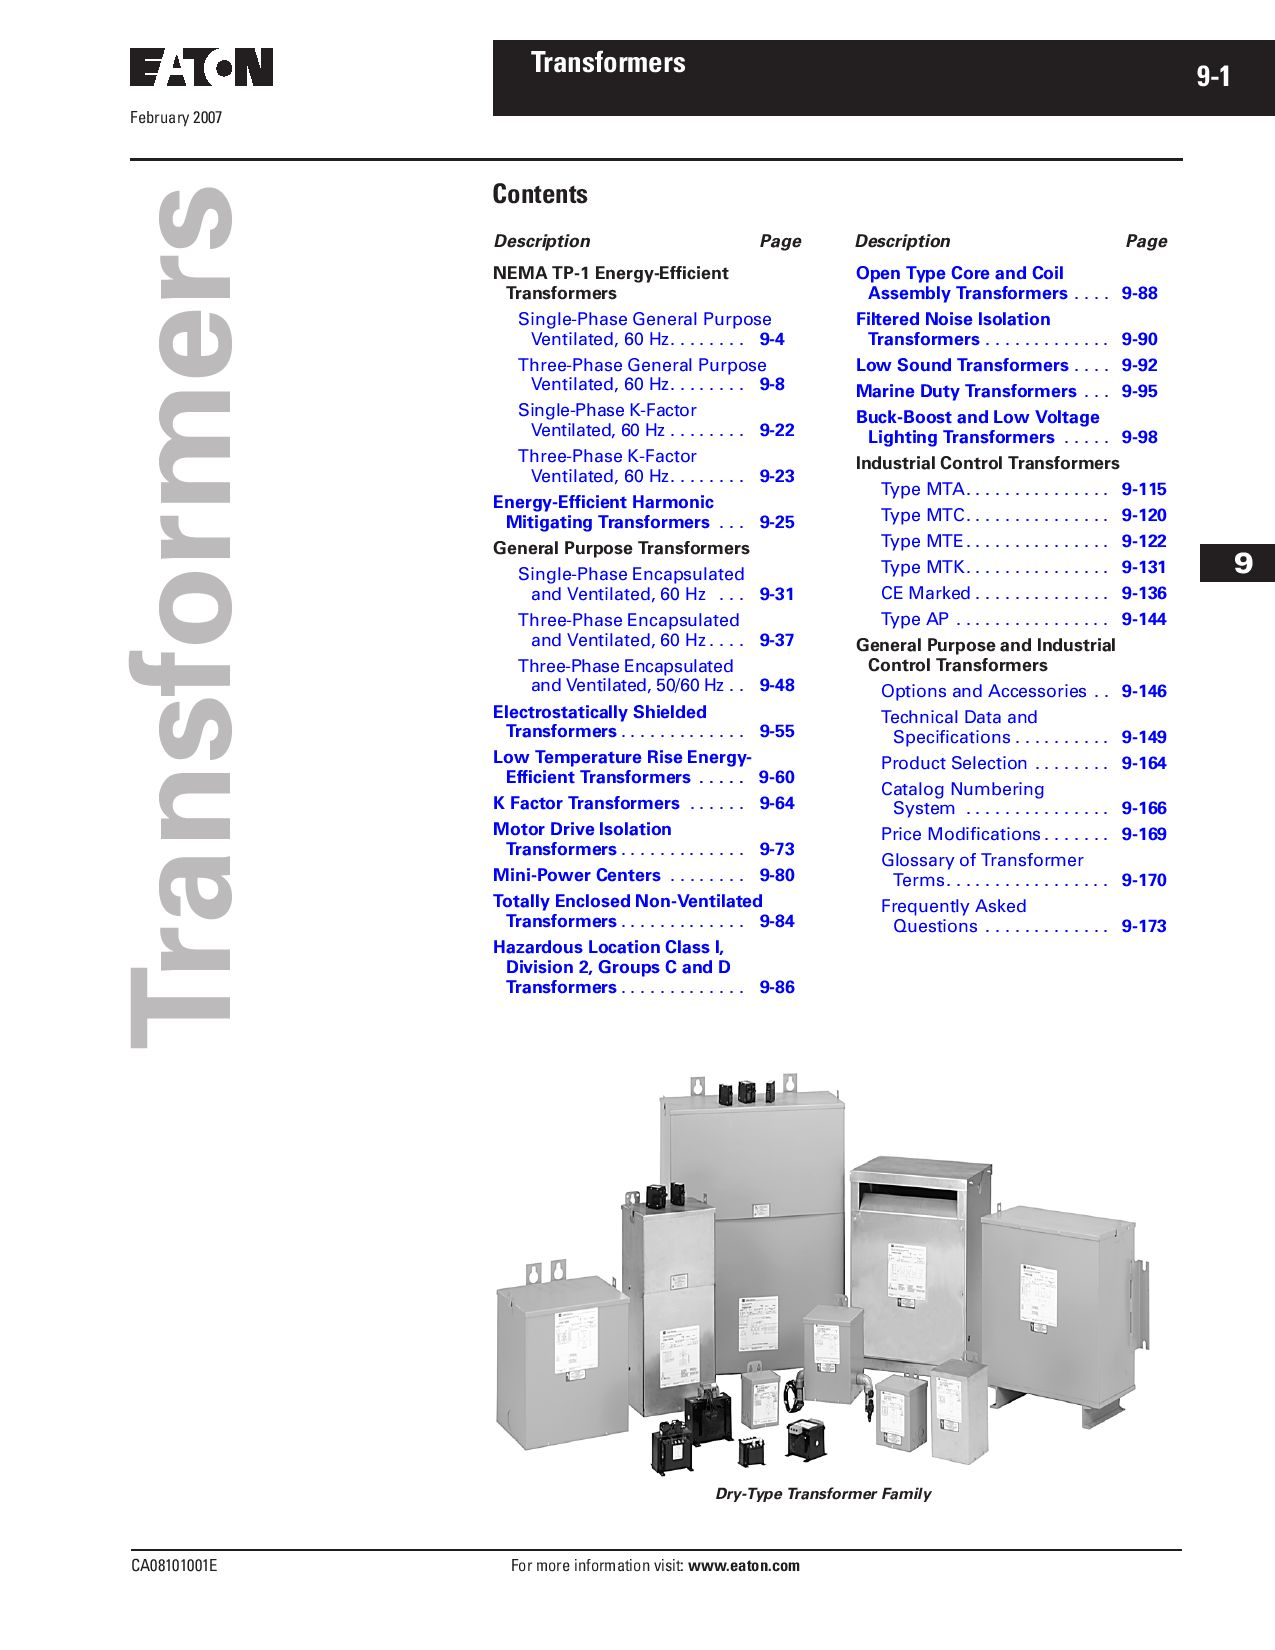 drive isolation transformer wiring diagram badlands 12000 lb winch tab 09 transformers by greg campbell issuu